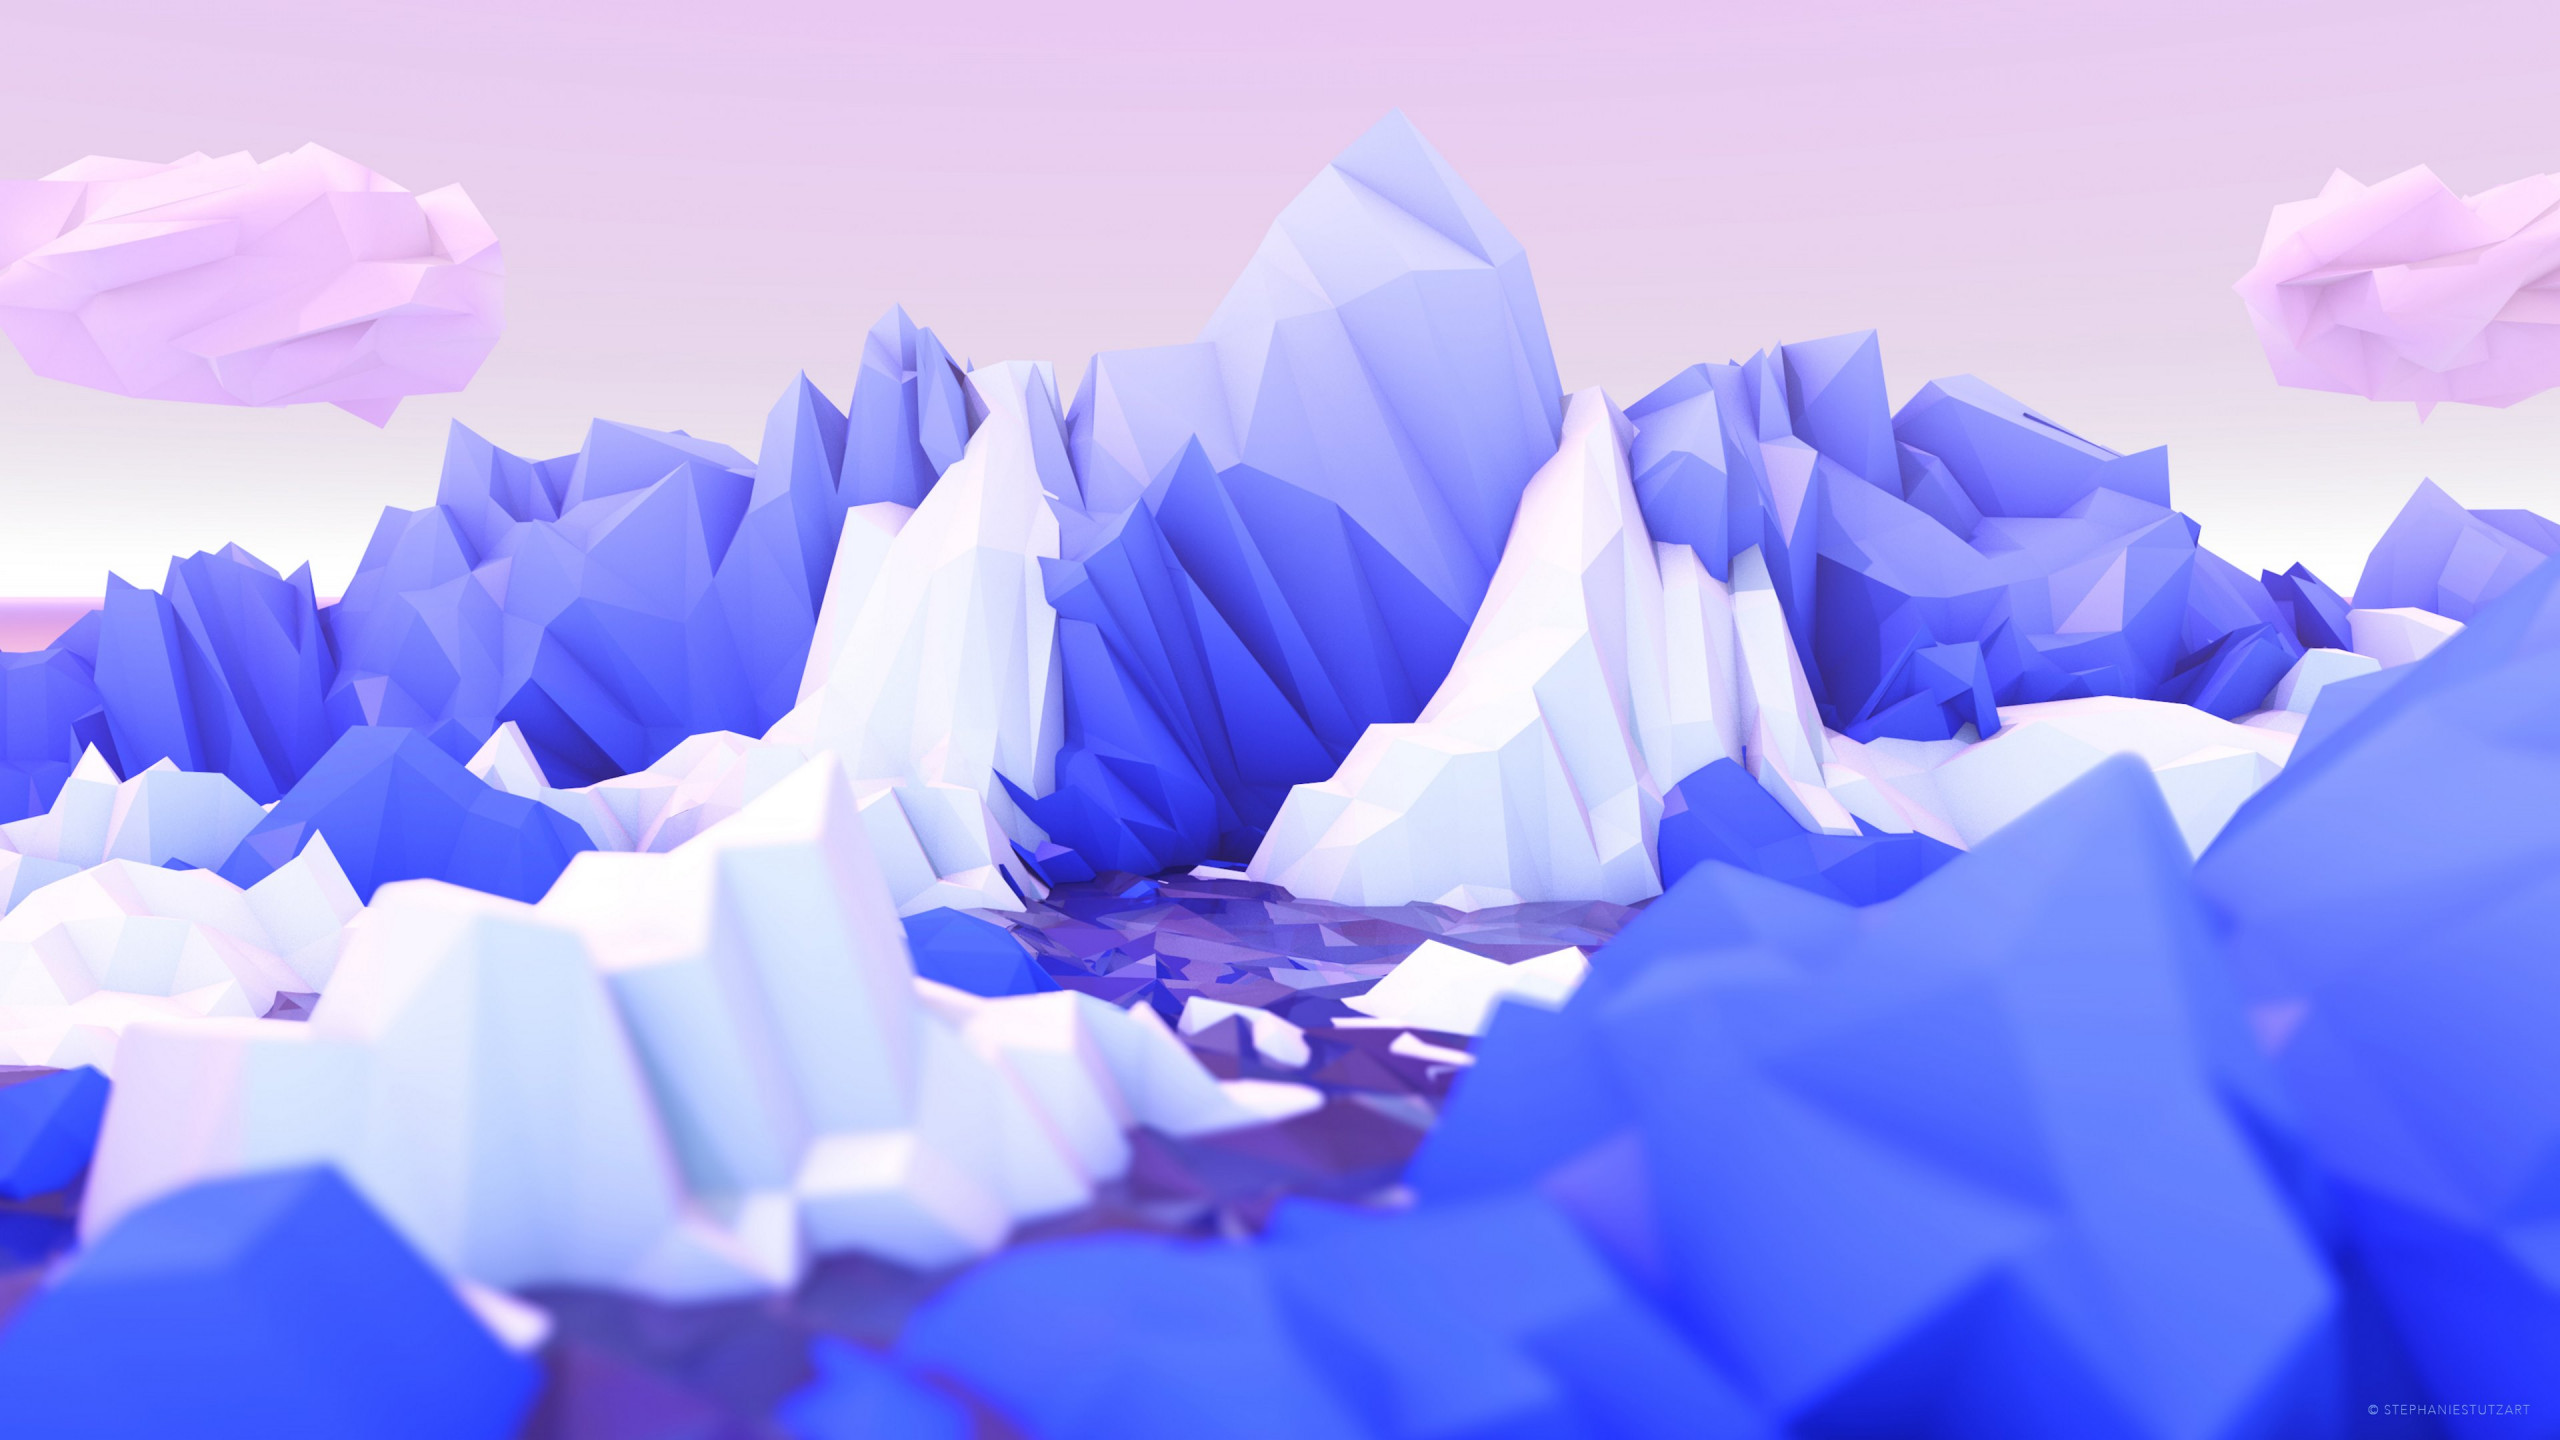 Download Wallpaper Low Poly Graphic Design 2560x1440